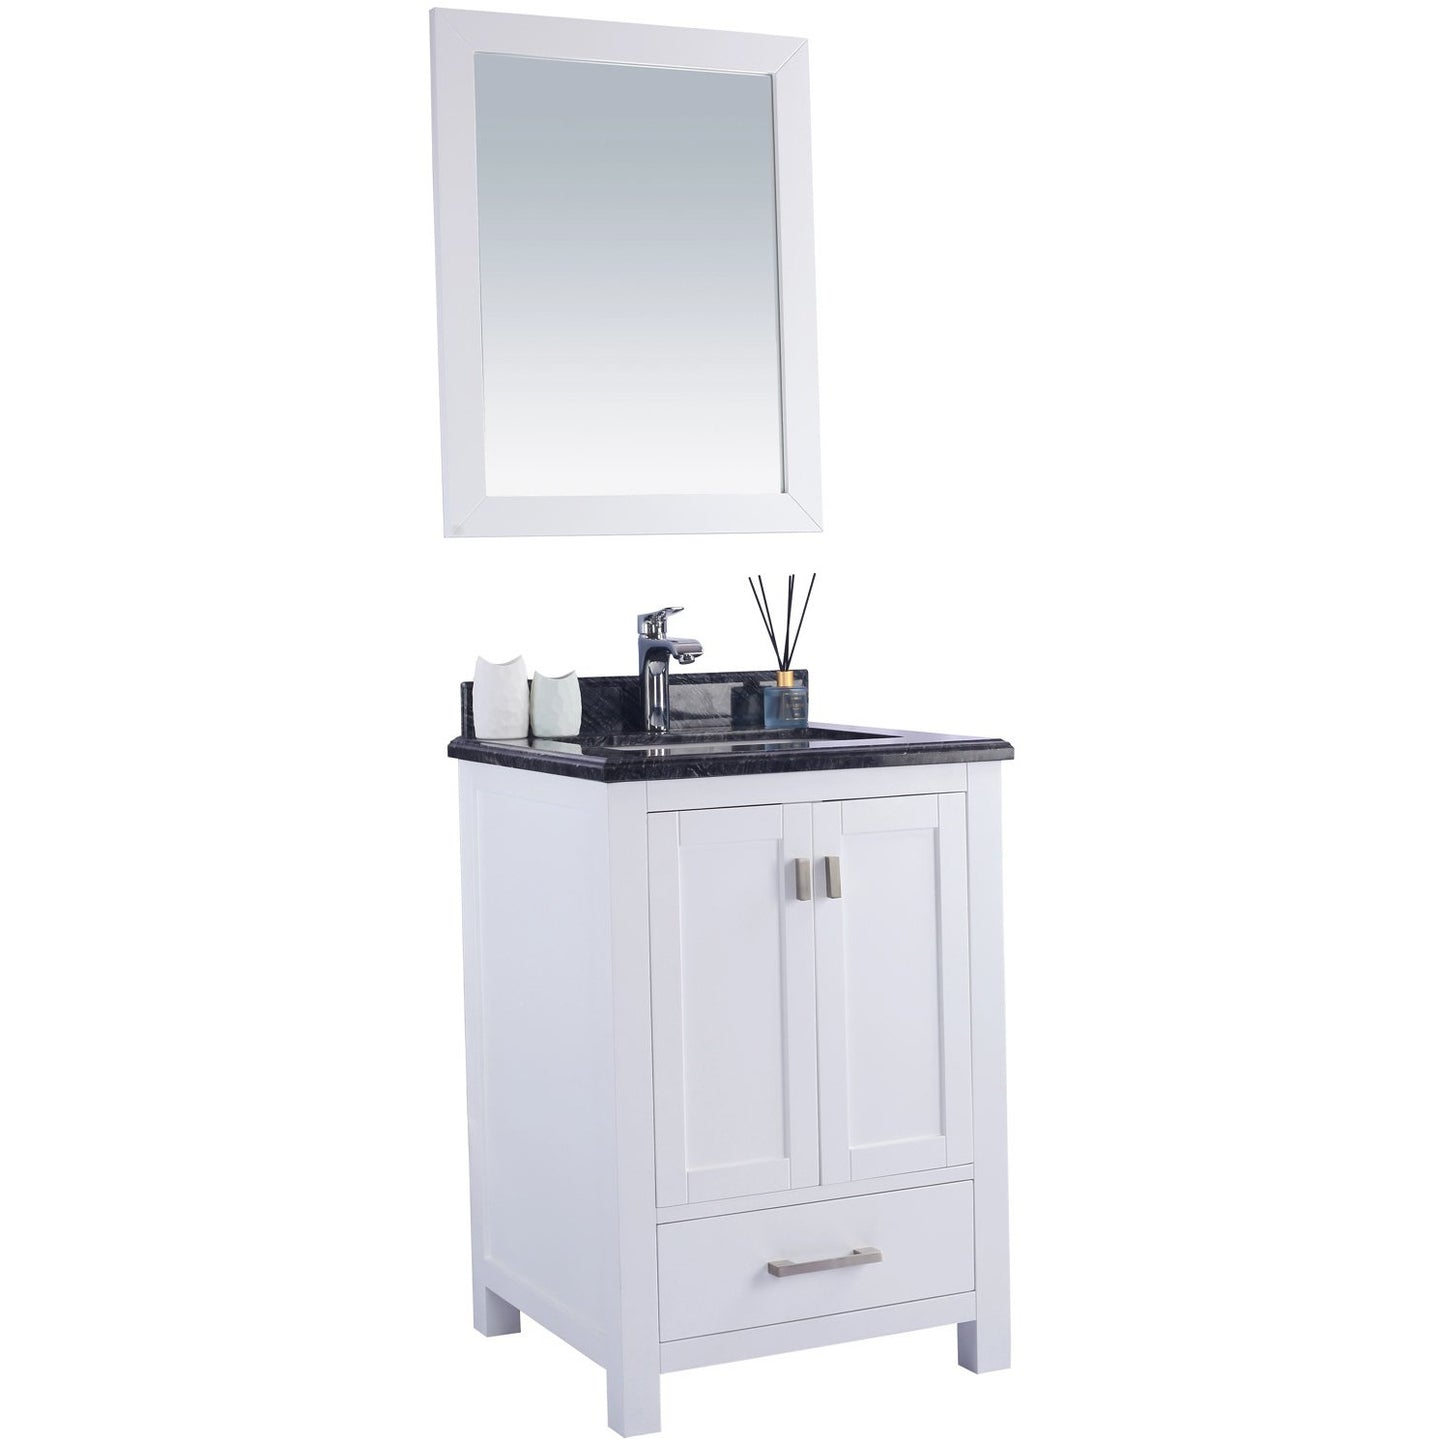 Wilson 24 - White Vanity and Black Wood Countertop by Laviva